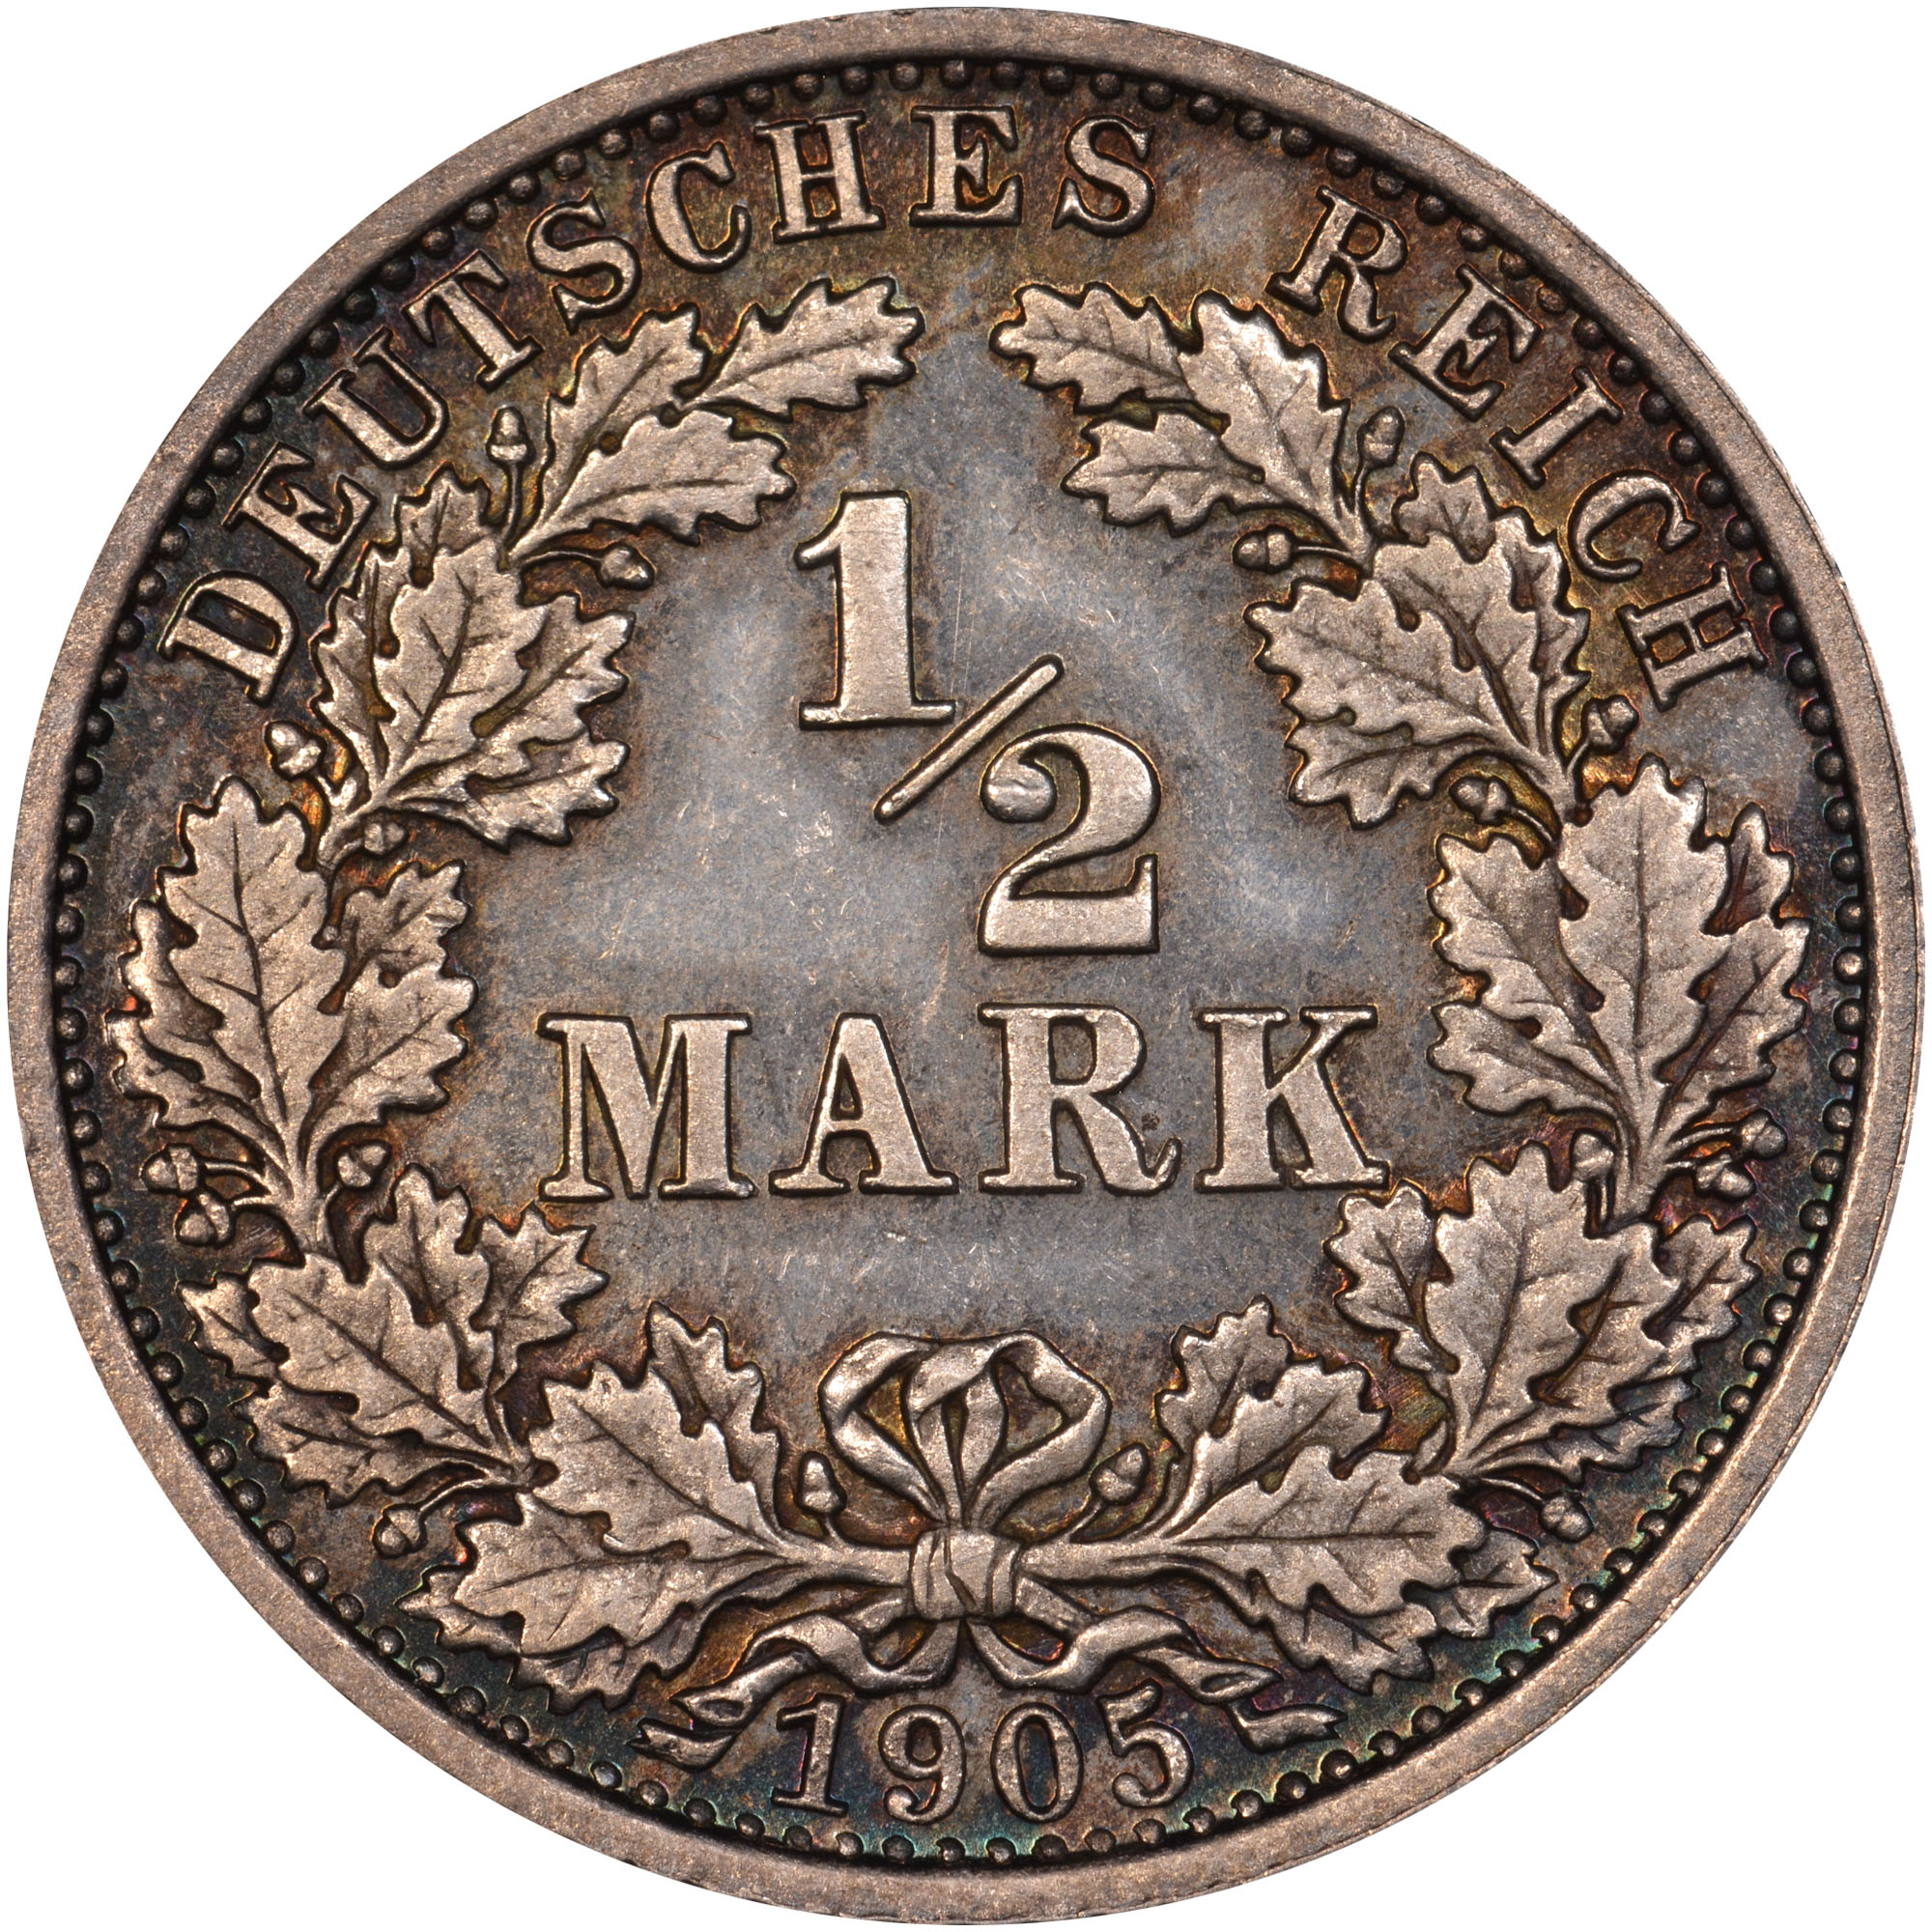 1808/7-1919/1619 Germany - Empire 1/2 Mark obverse